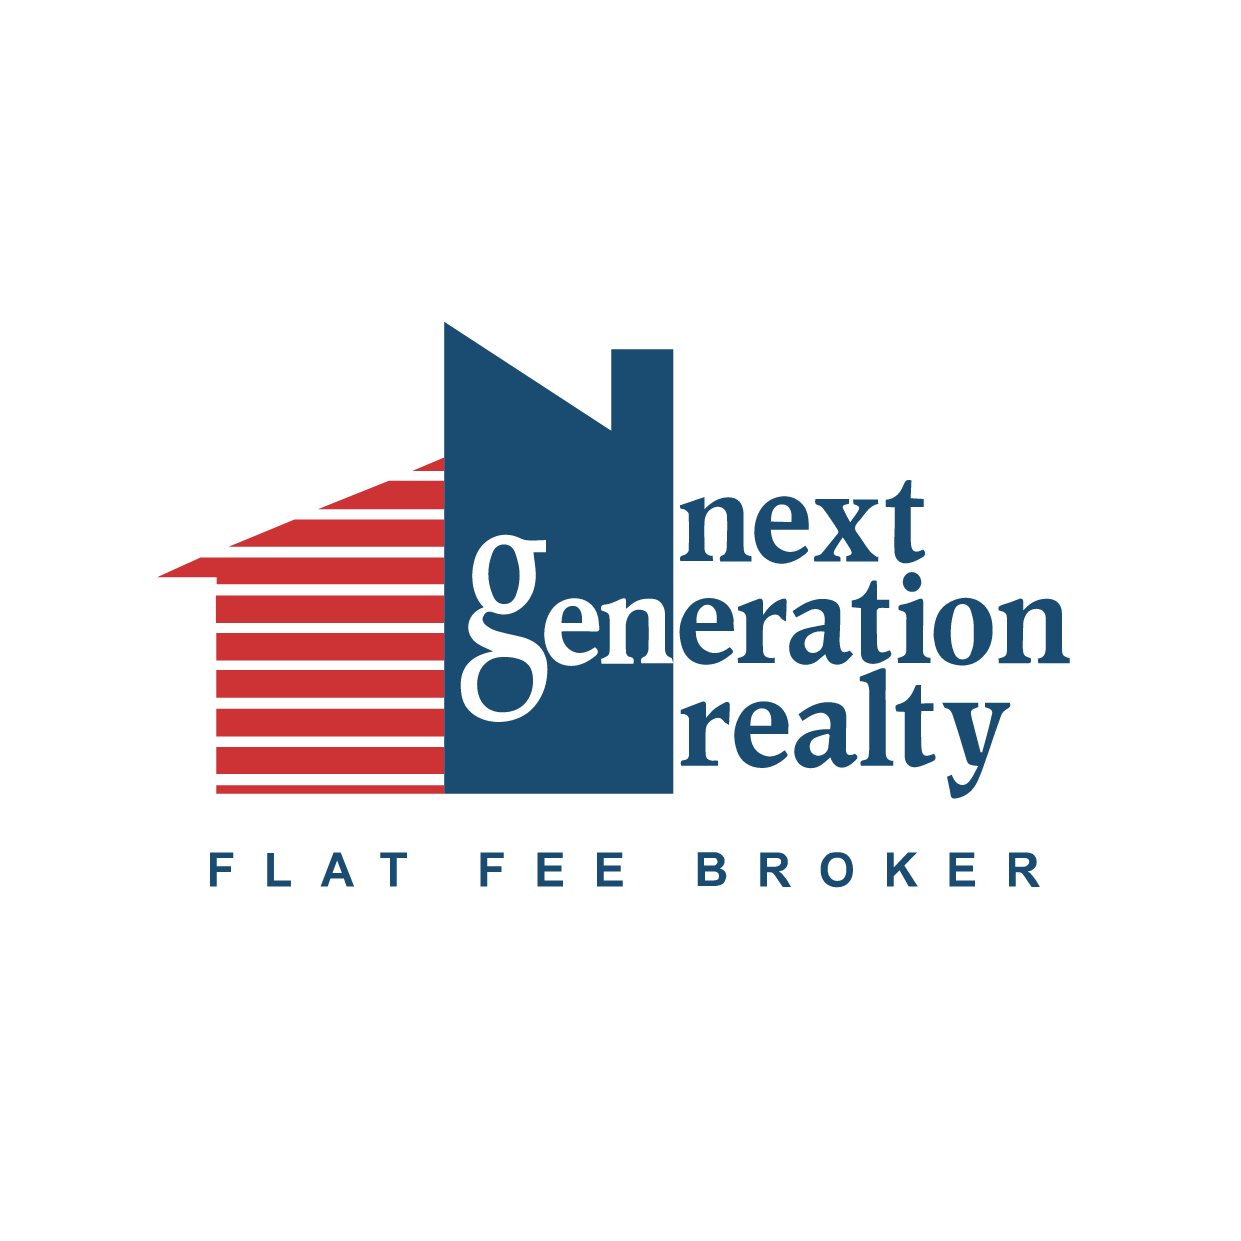 Next Generation Realty image 1